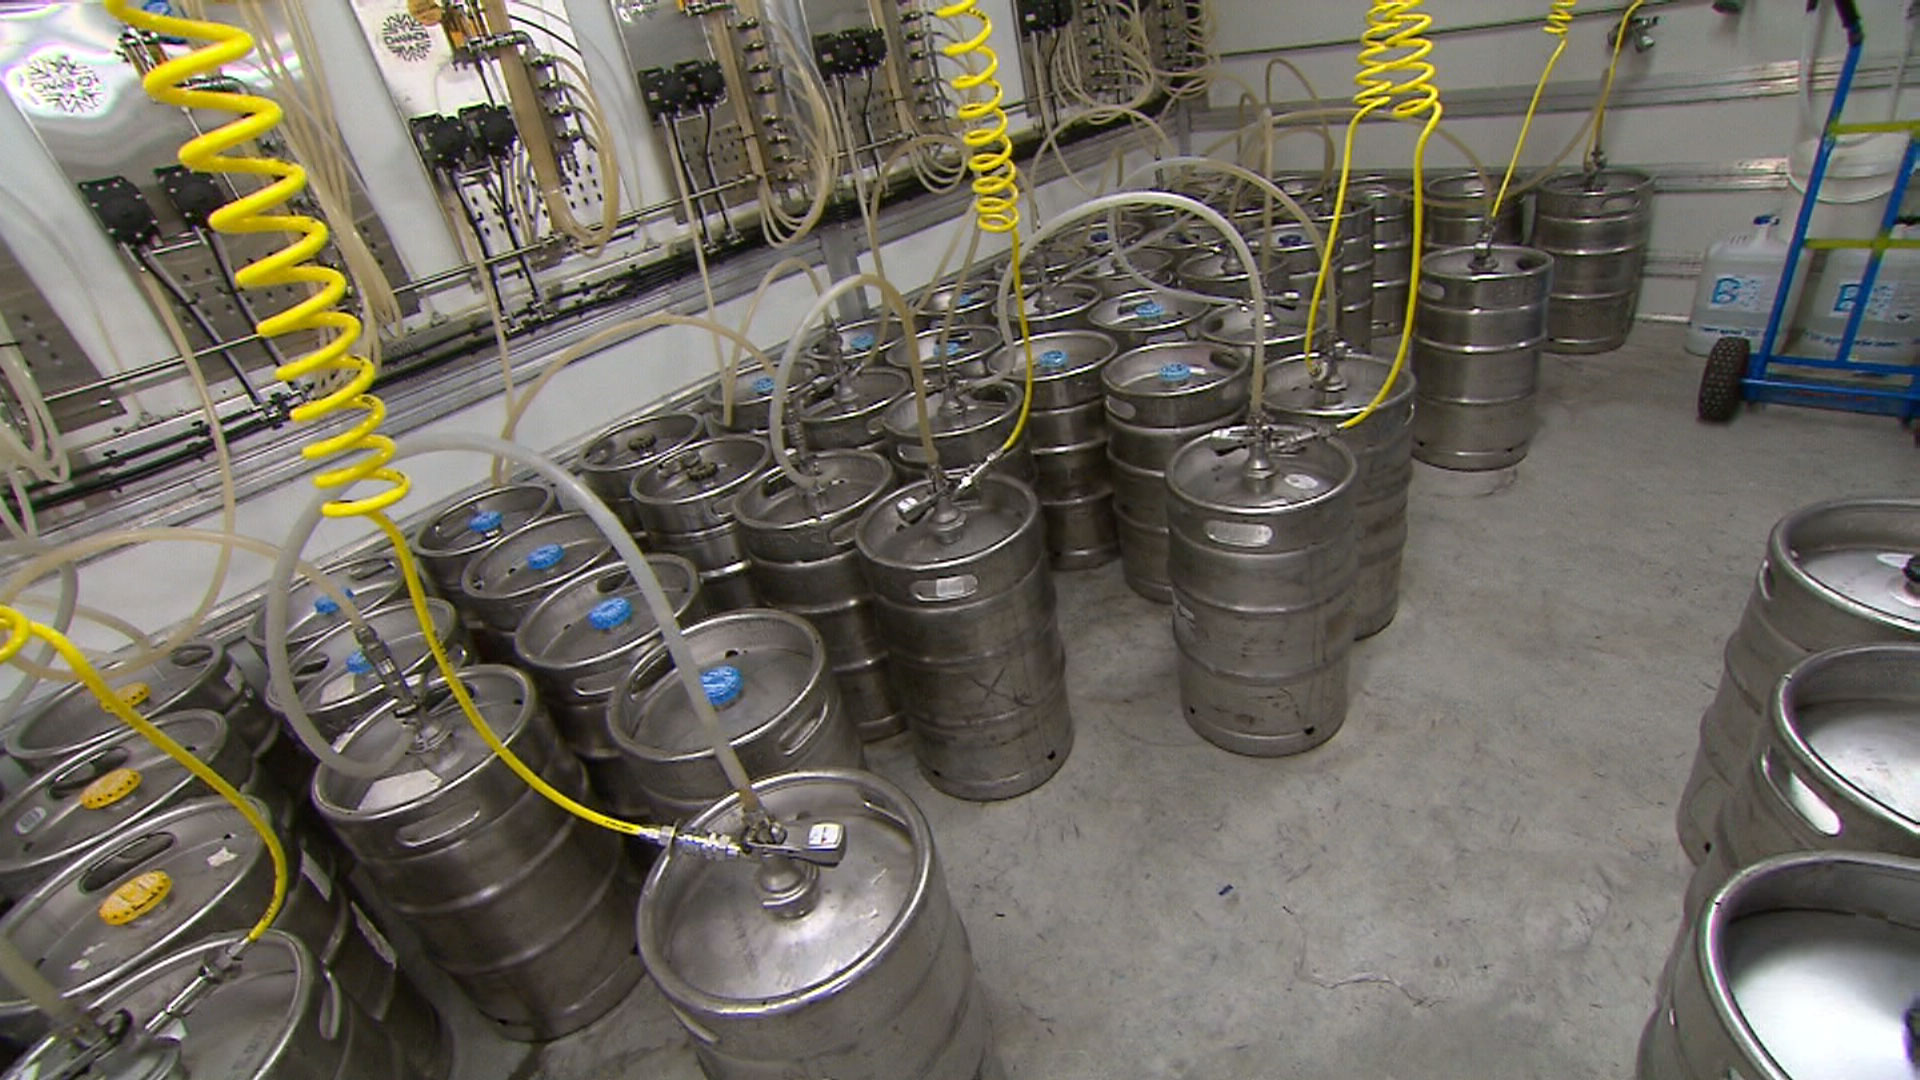 Kegs are being stocked ahead of the game. (9NEWS)